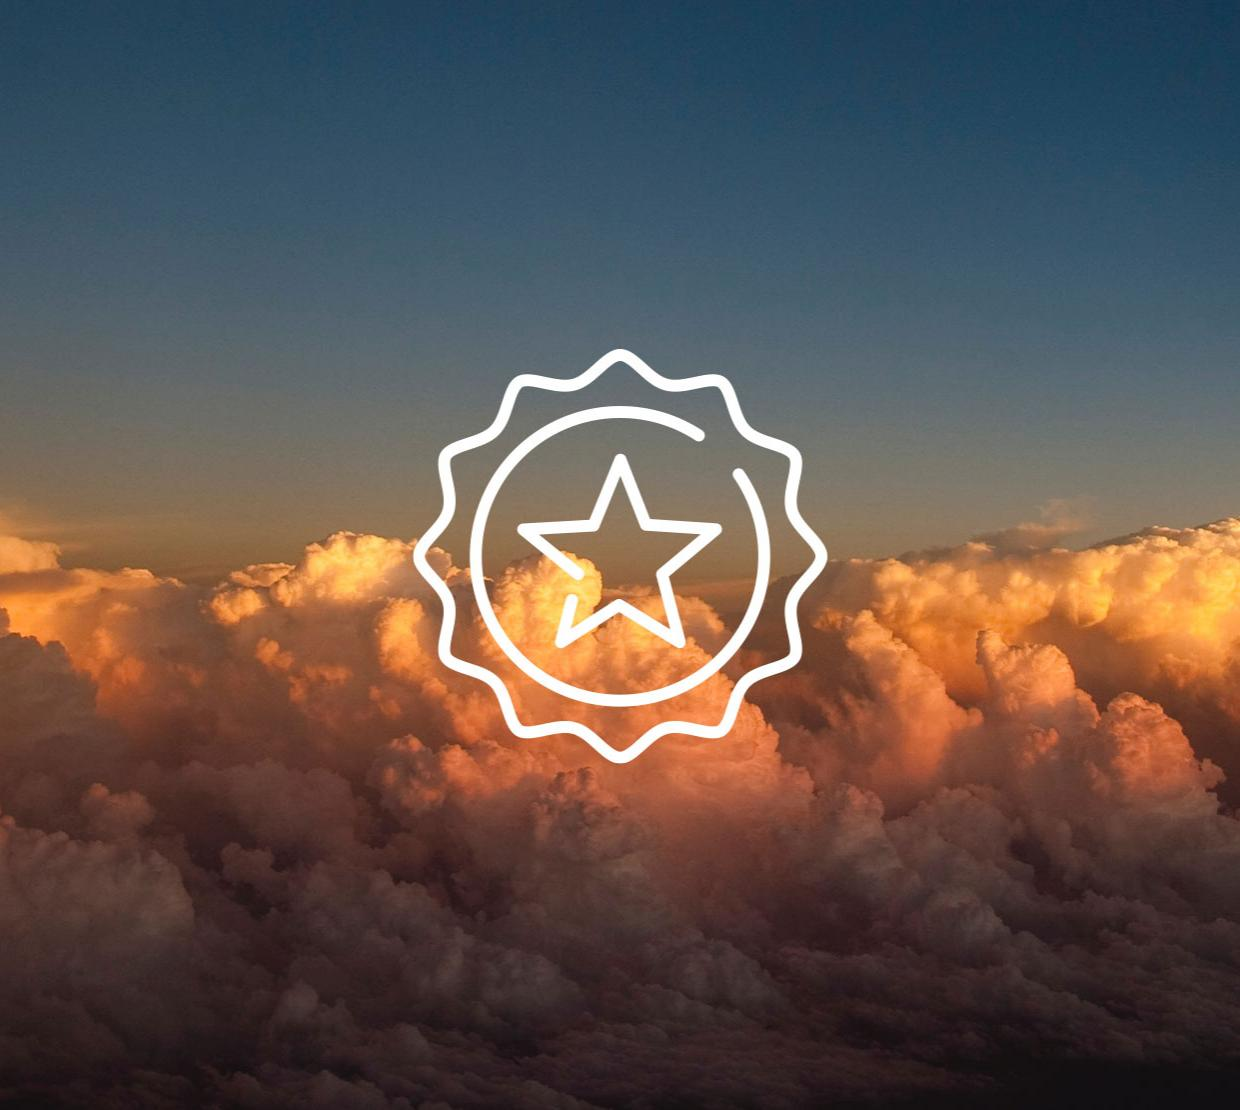 star icon above image of clouds at sunset